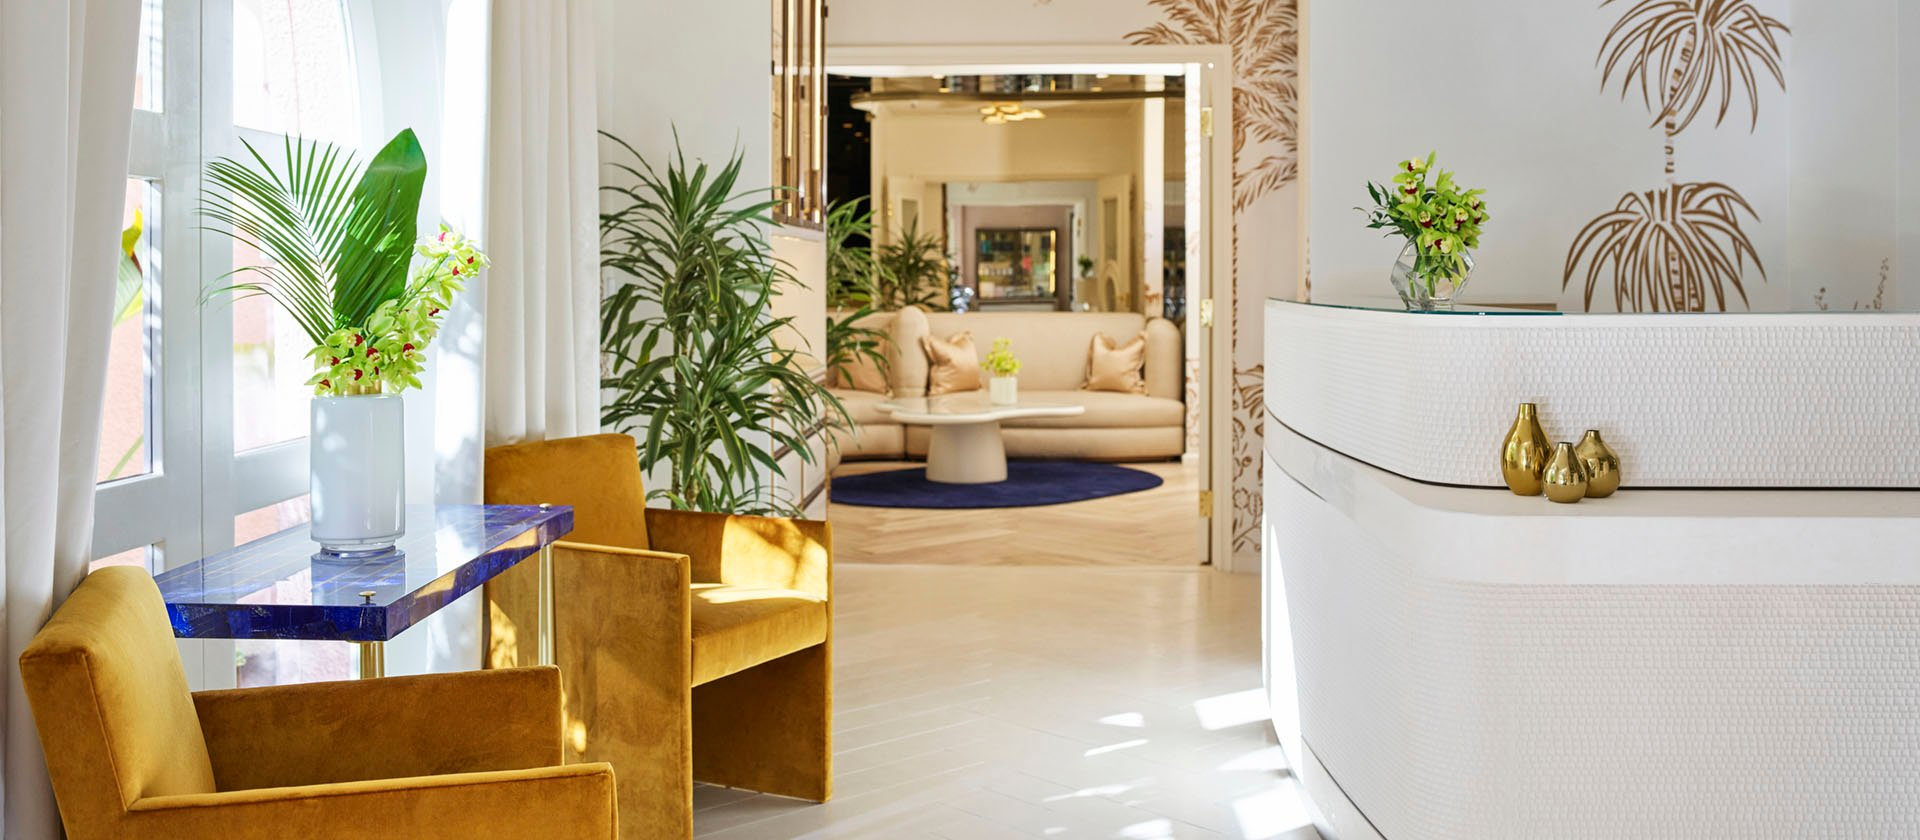 Spa reception entrance with natural light and gold pattern wallpaper